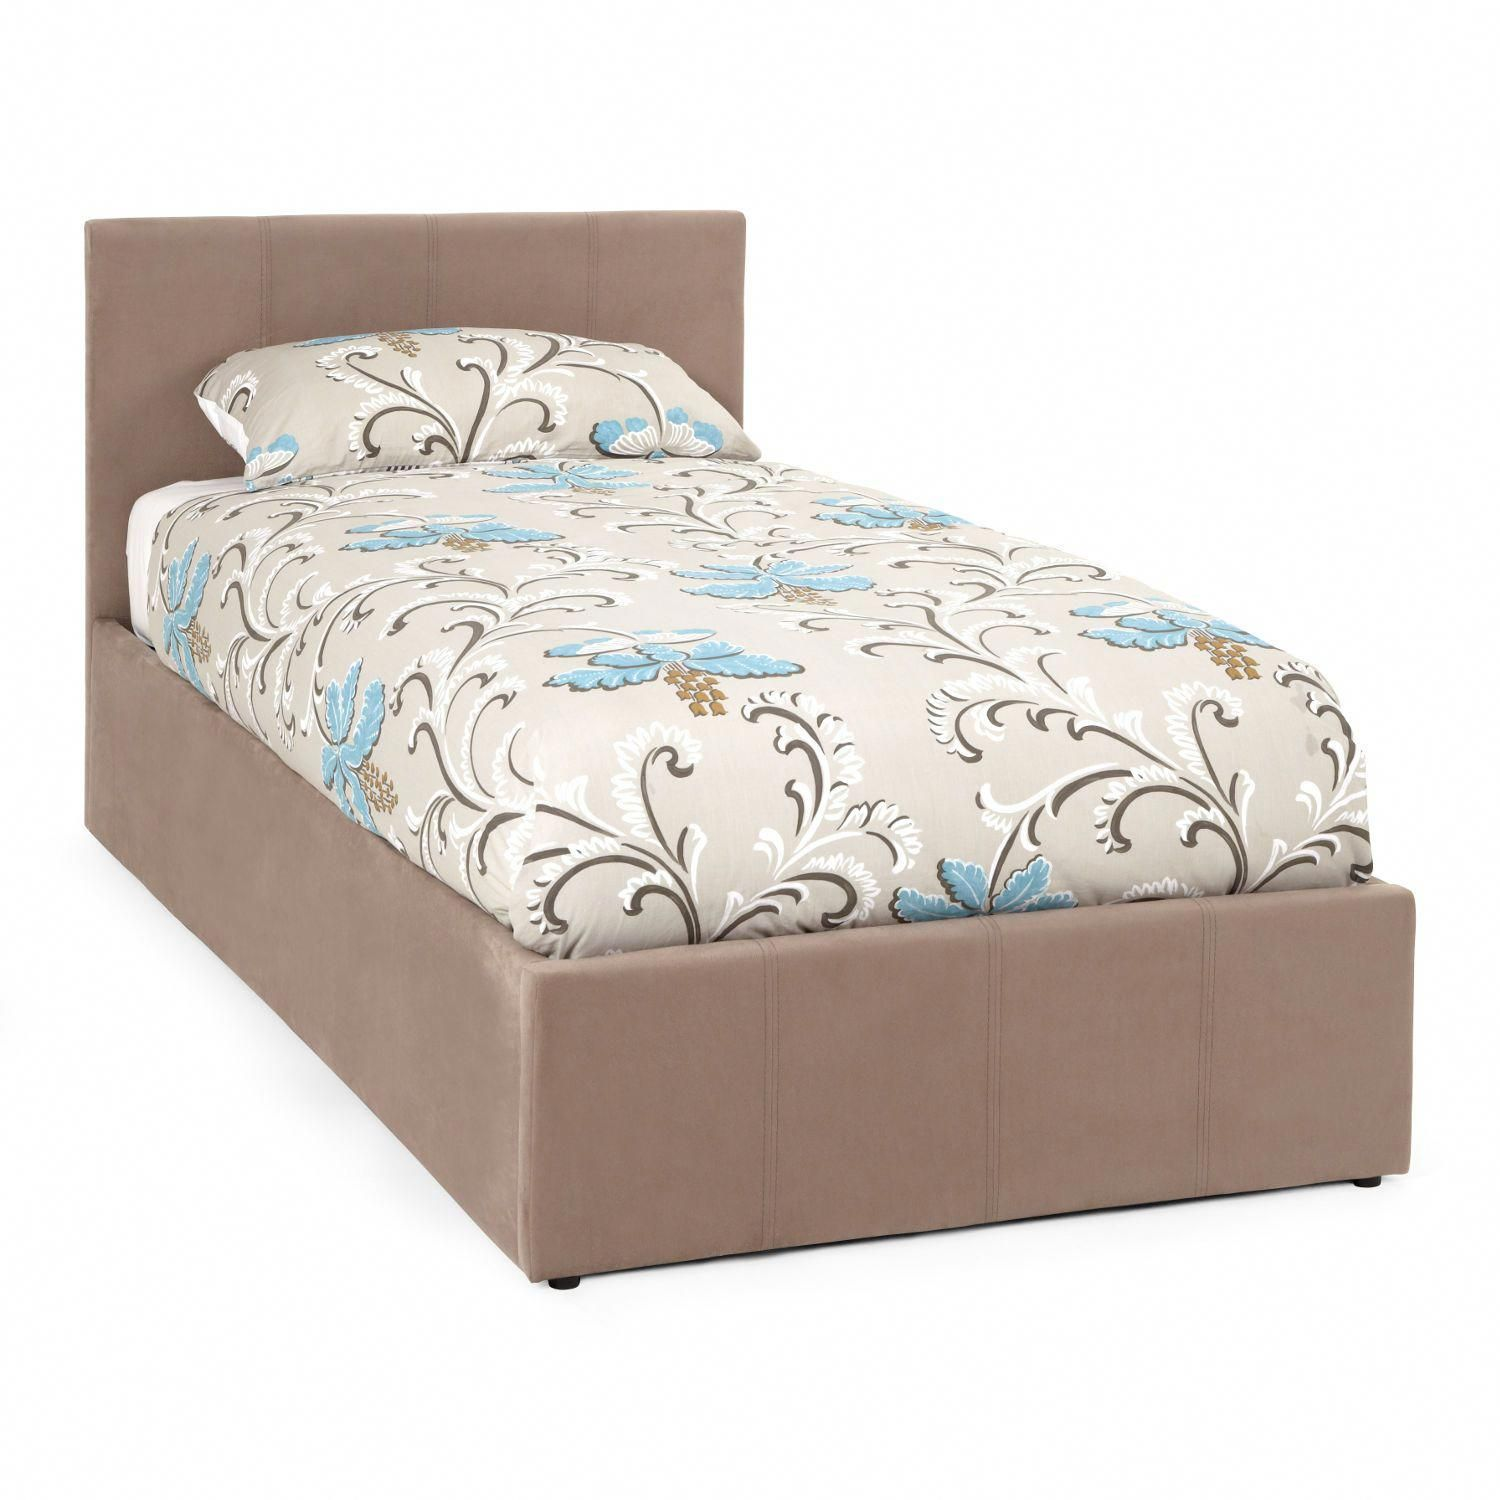 Bedding Sets Extra Long Twin BedSheetsTopRated Ottoman